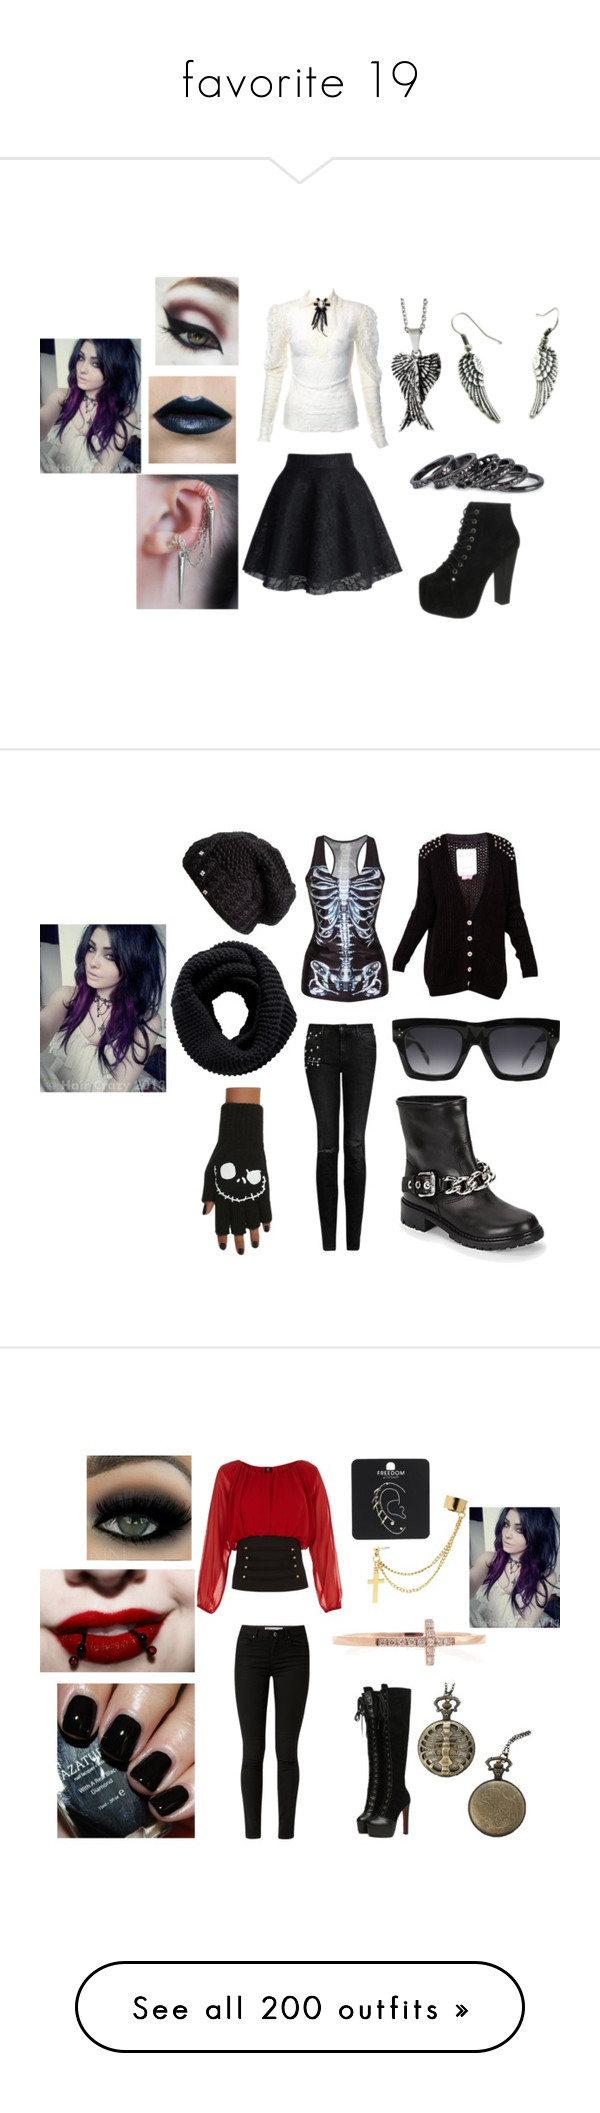 """favorite 19"" by natalie1578 ❤ liked on Polyvore featuring Chicwish, Jeffrey Campbell, Pieces, Reeds Jewelers, MANGO, Giuseppe Zanotti, CÉLINE, V London, Azature and Sydney Evan"